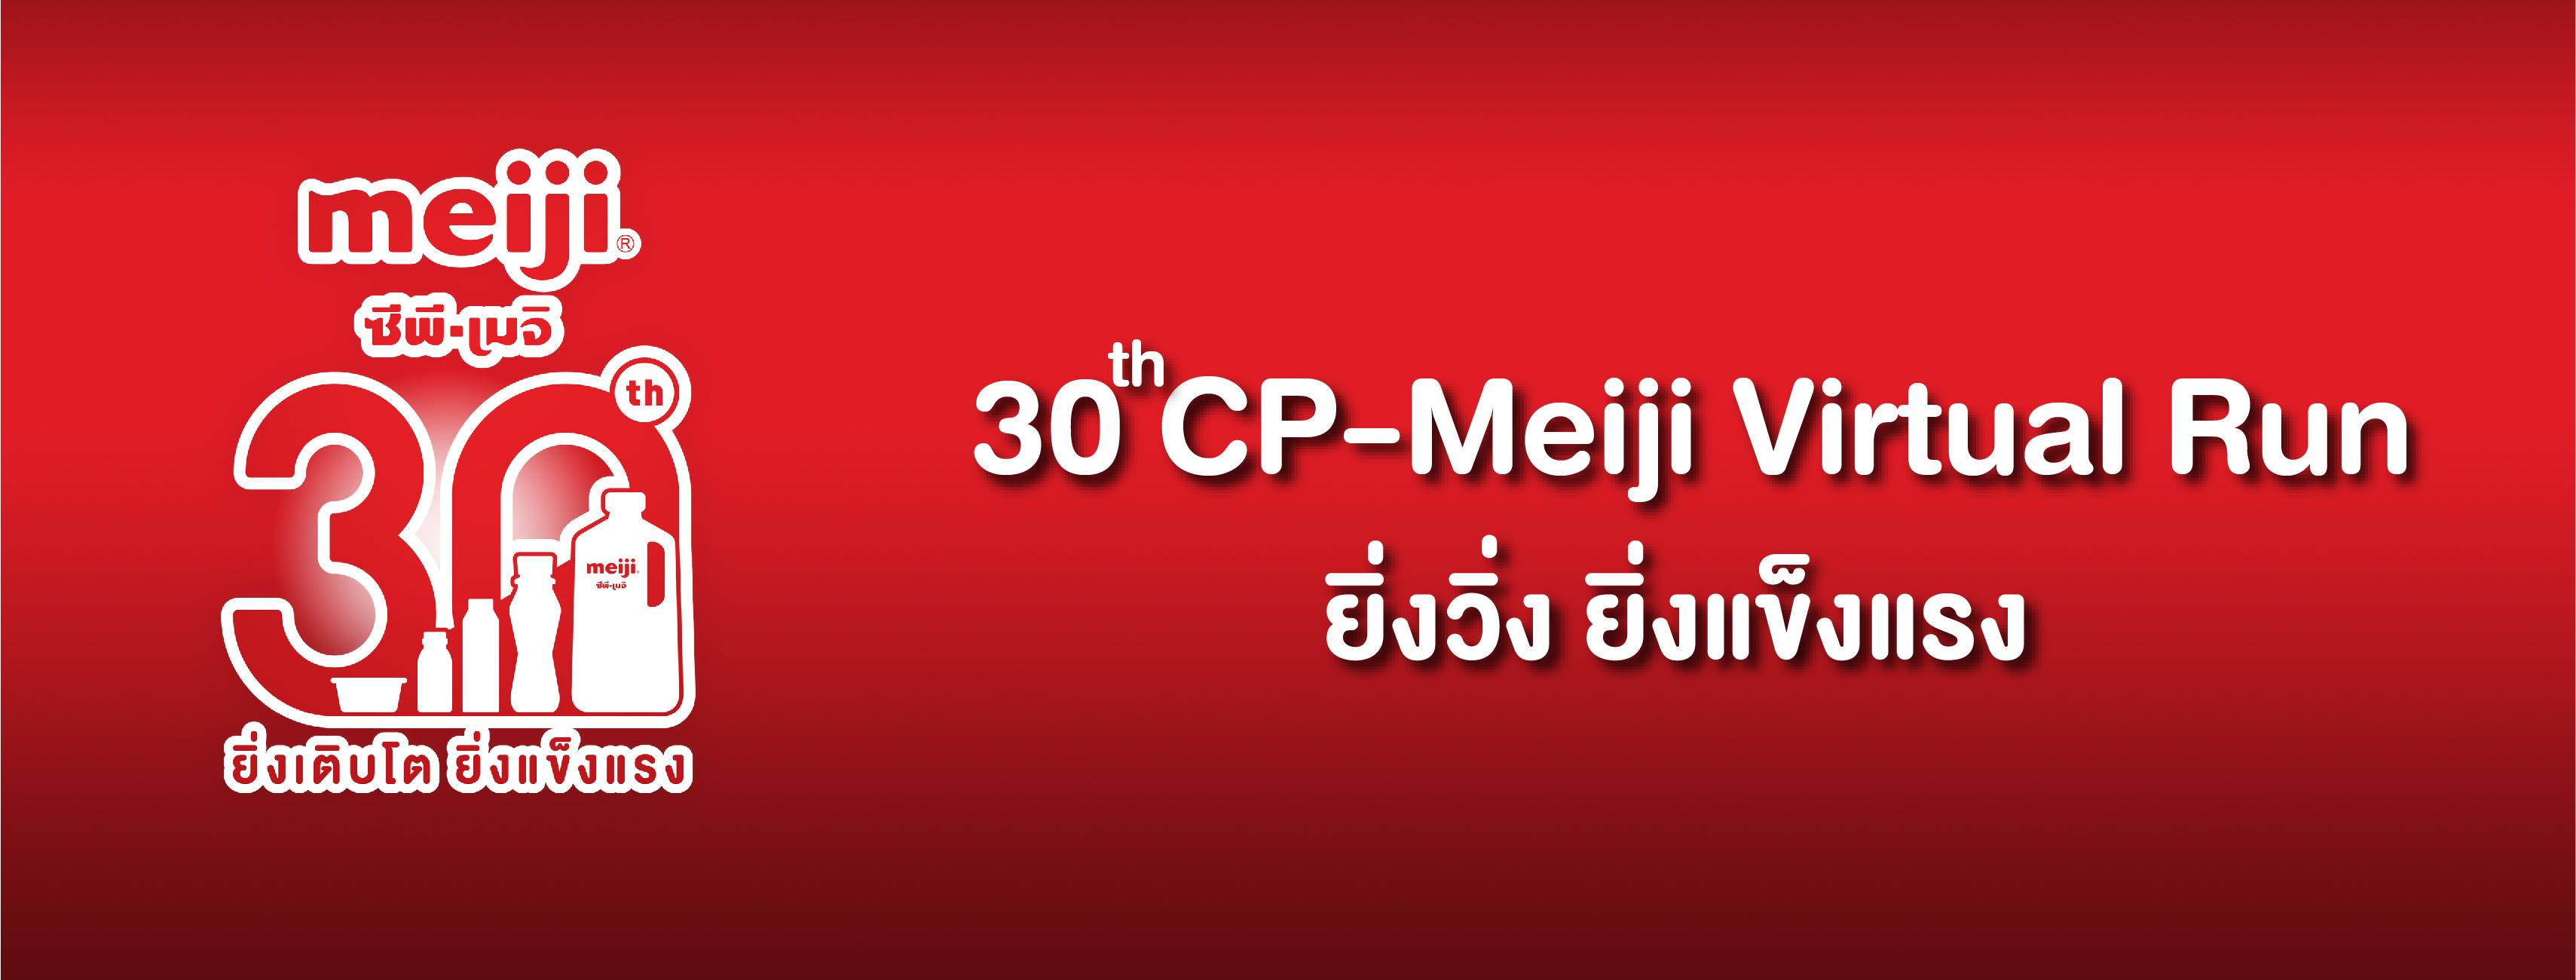 30th CP-Meiji Virtual Run